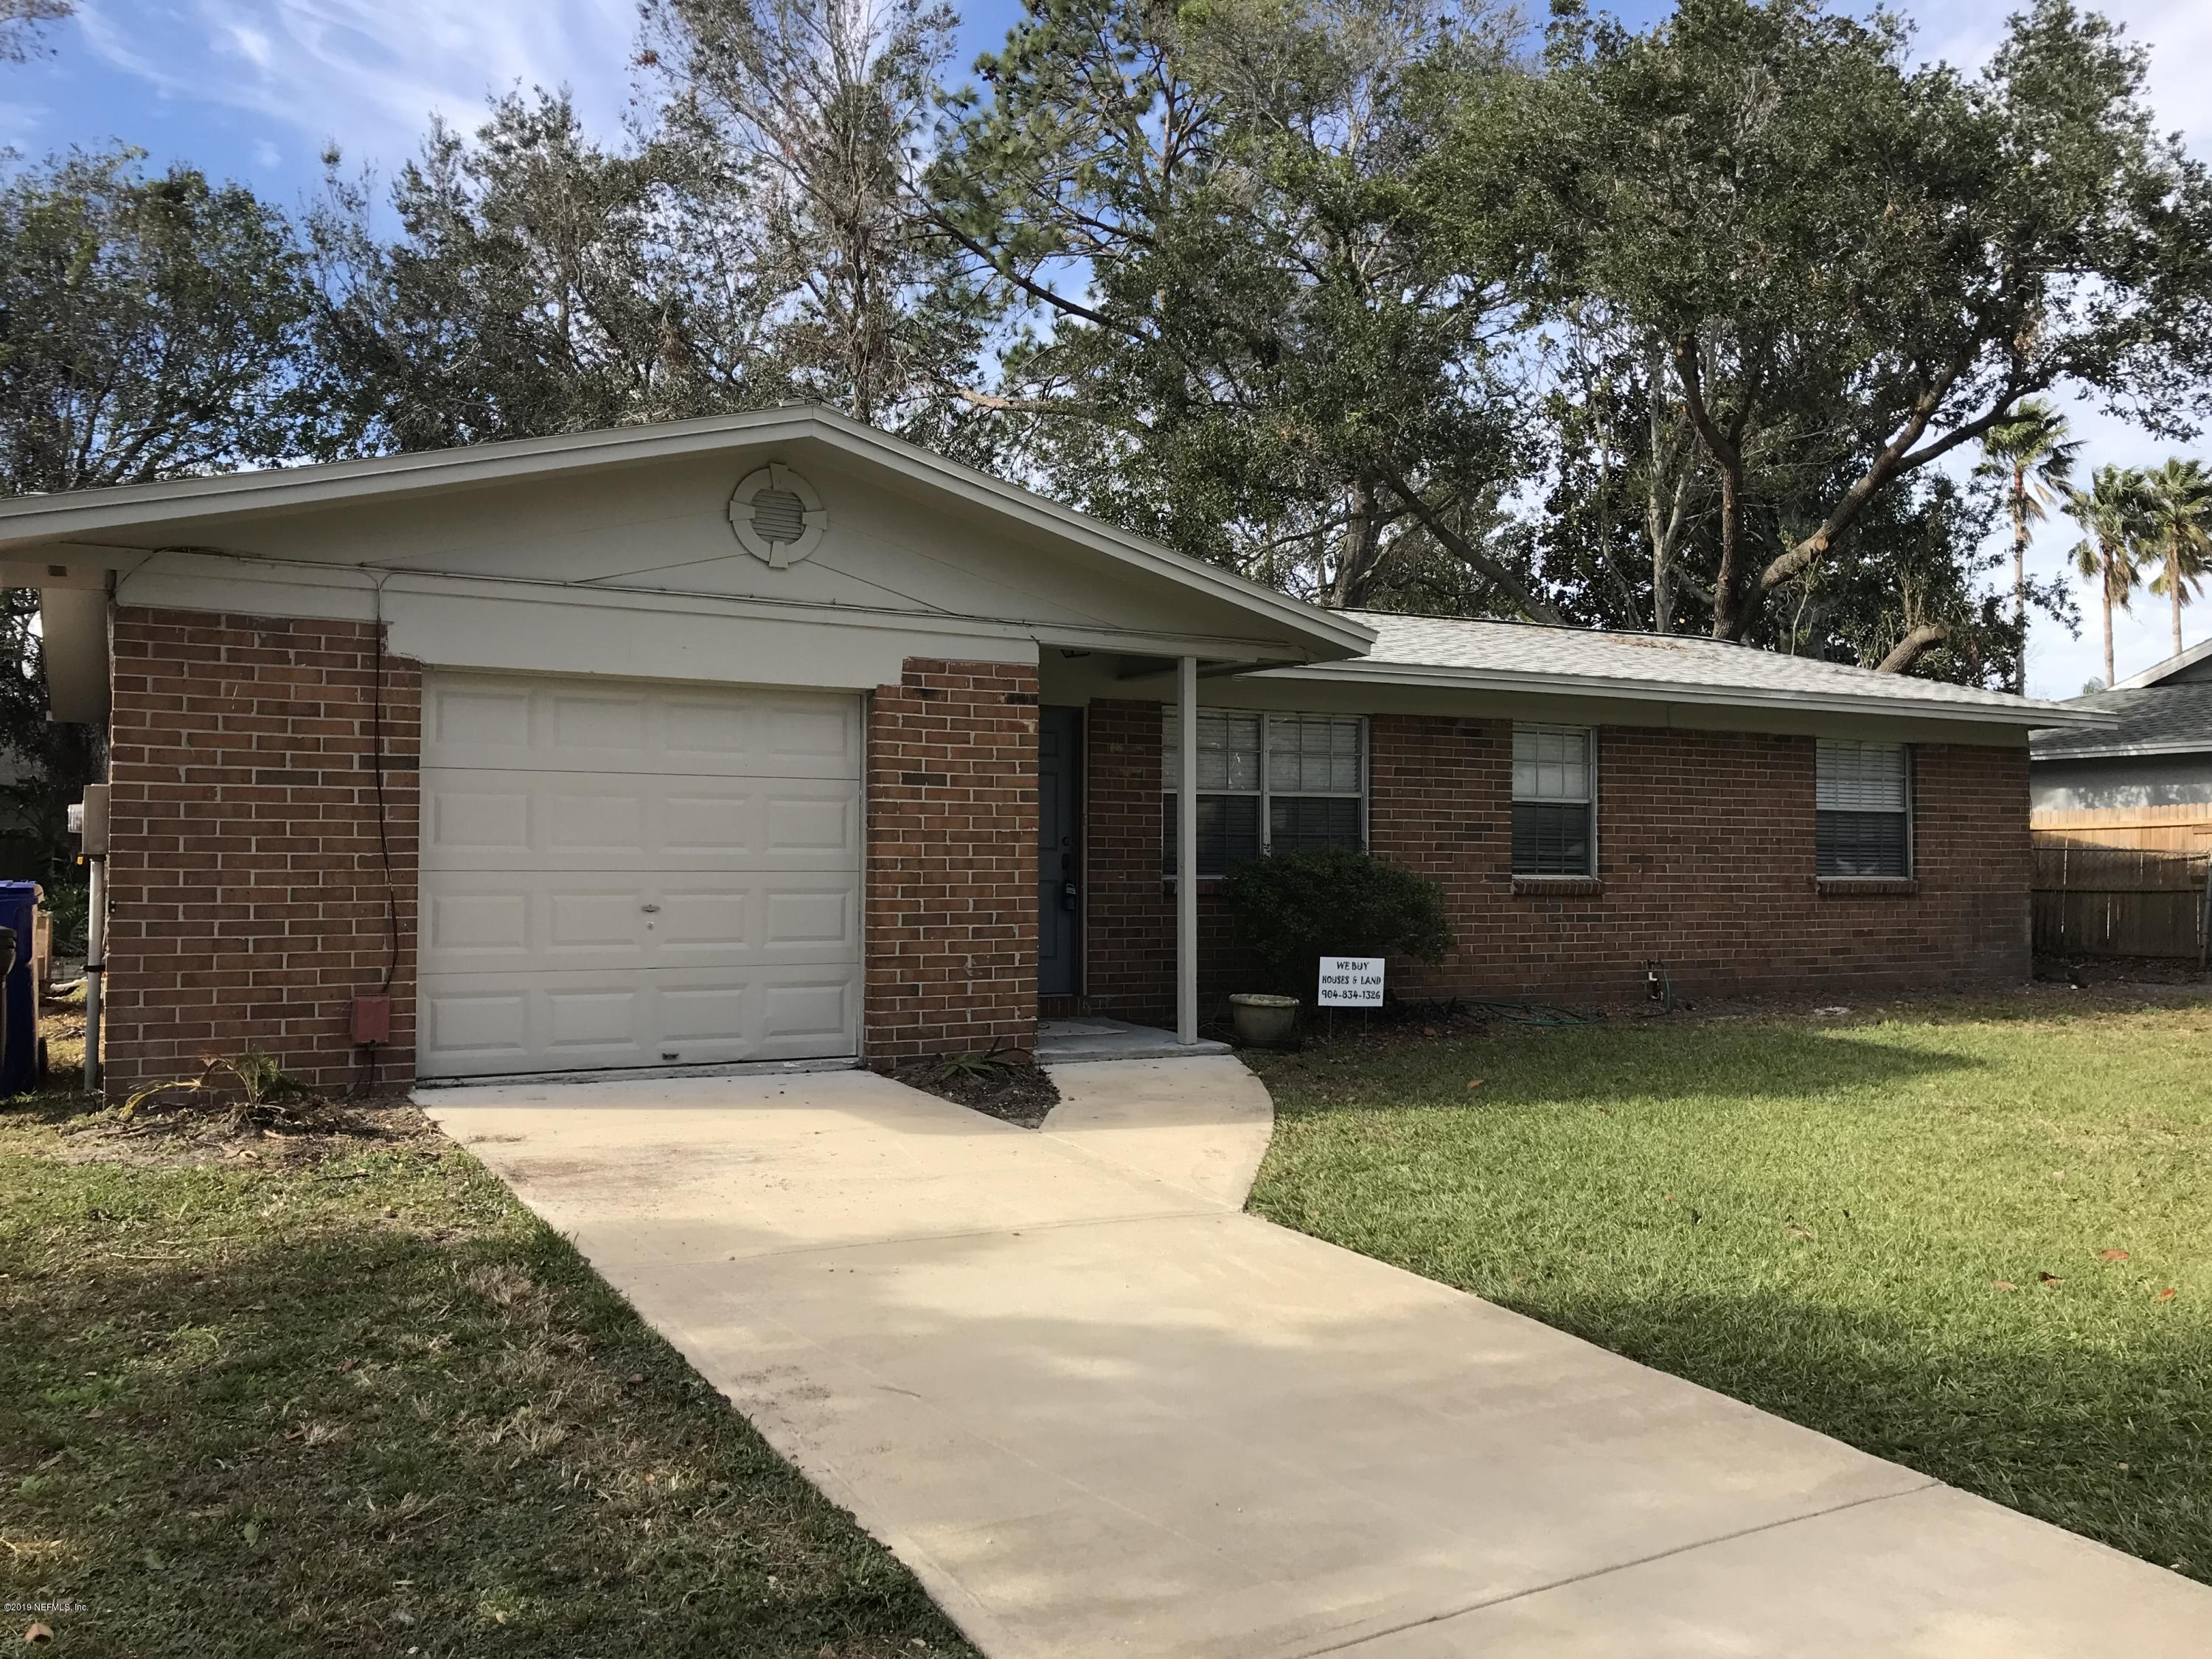 49 DOLPHIN, PONTE VEDRA BEACH, FLORIDA 32082, 3 Bedrooms Bedrooms, ,2 BathroomsBathrooms,Residential - single family,For sale,DOLPHIN,1018997